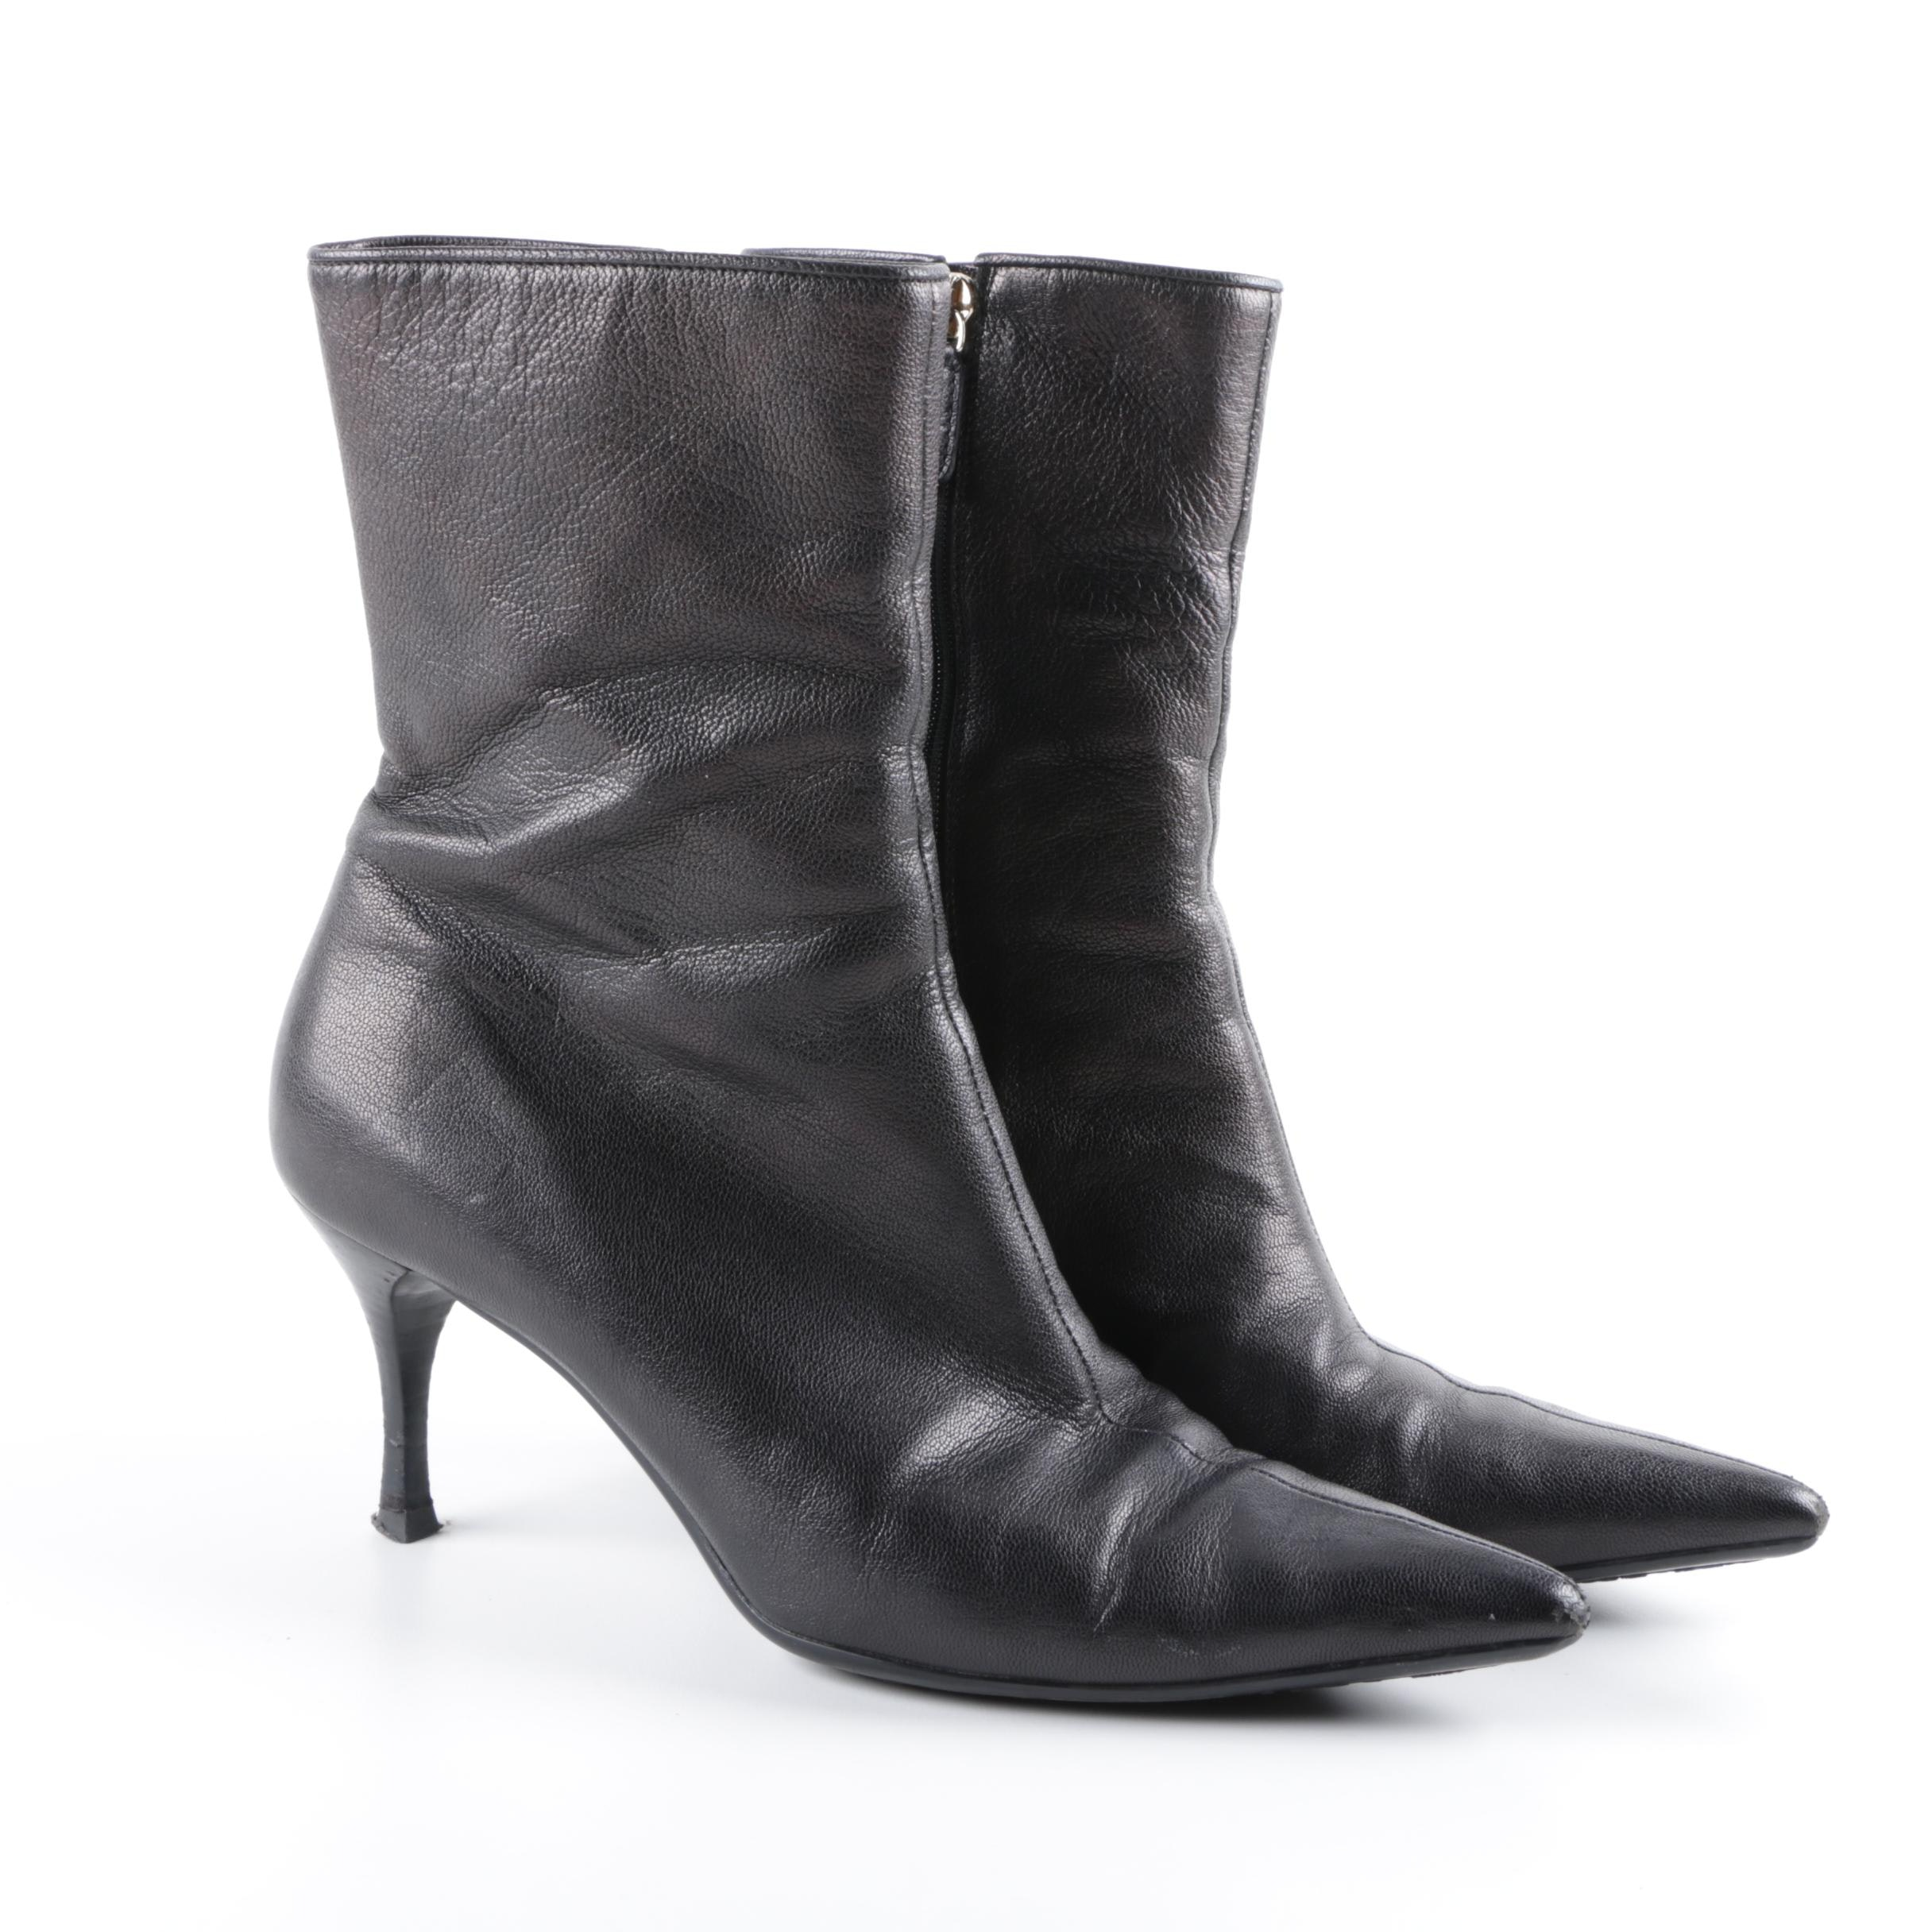 Gucci Black Leather High Heel Ankle Boots